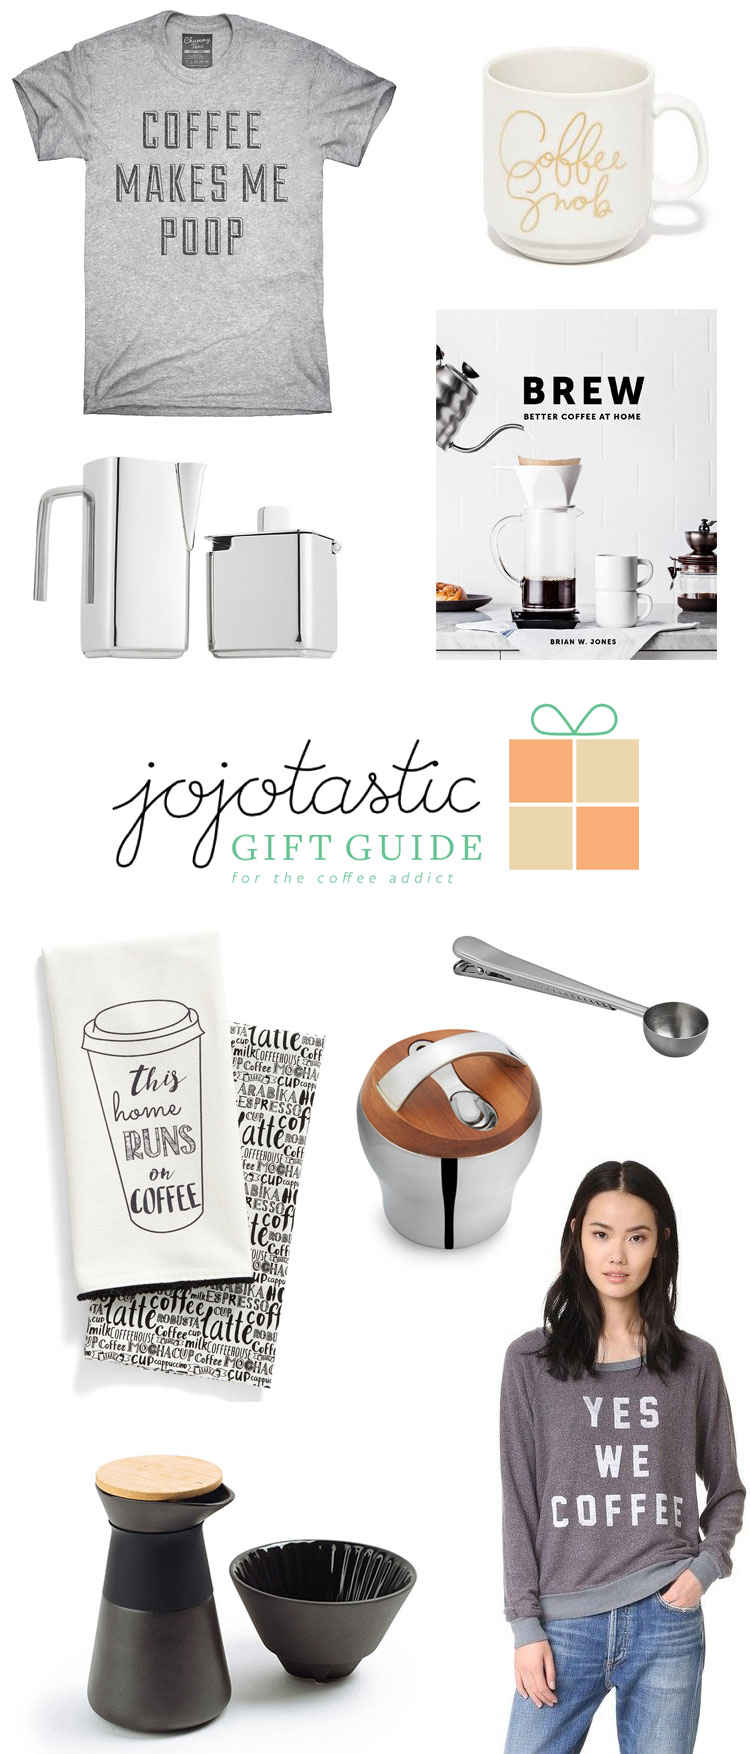 the ultimate gift guide for the coffee addict in your life — over 20 gift ideas for the holidays! find more inspiration on jojotastic.com